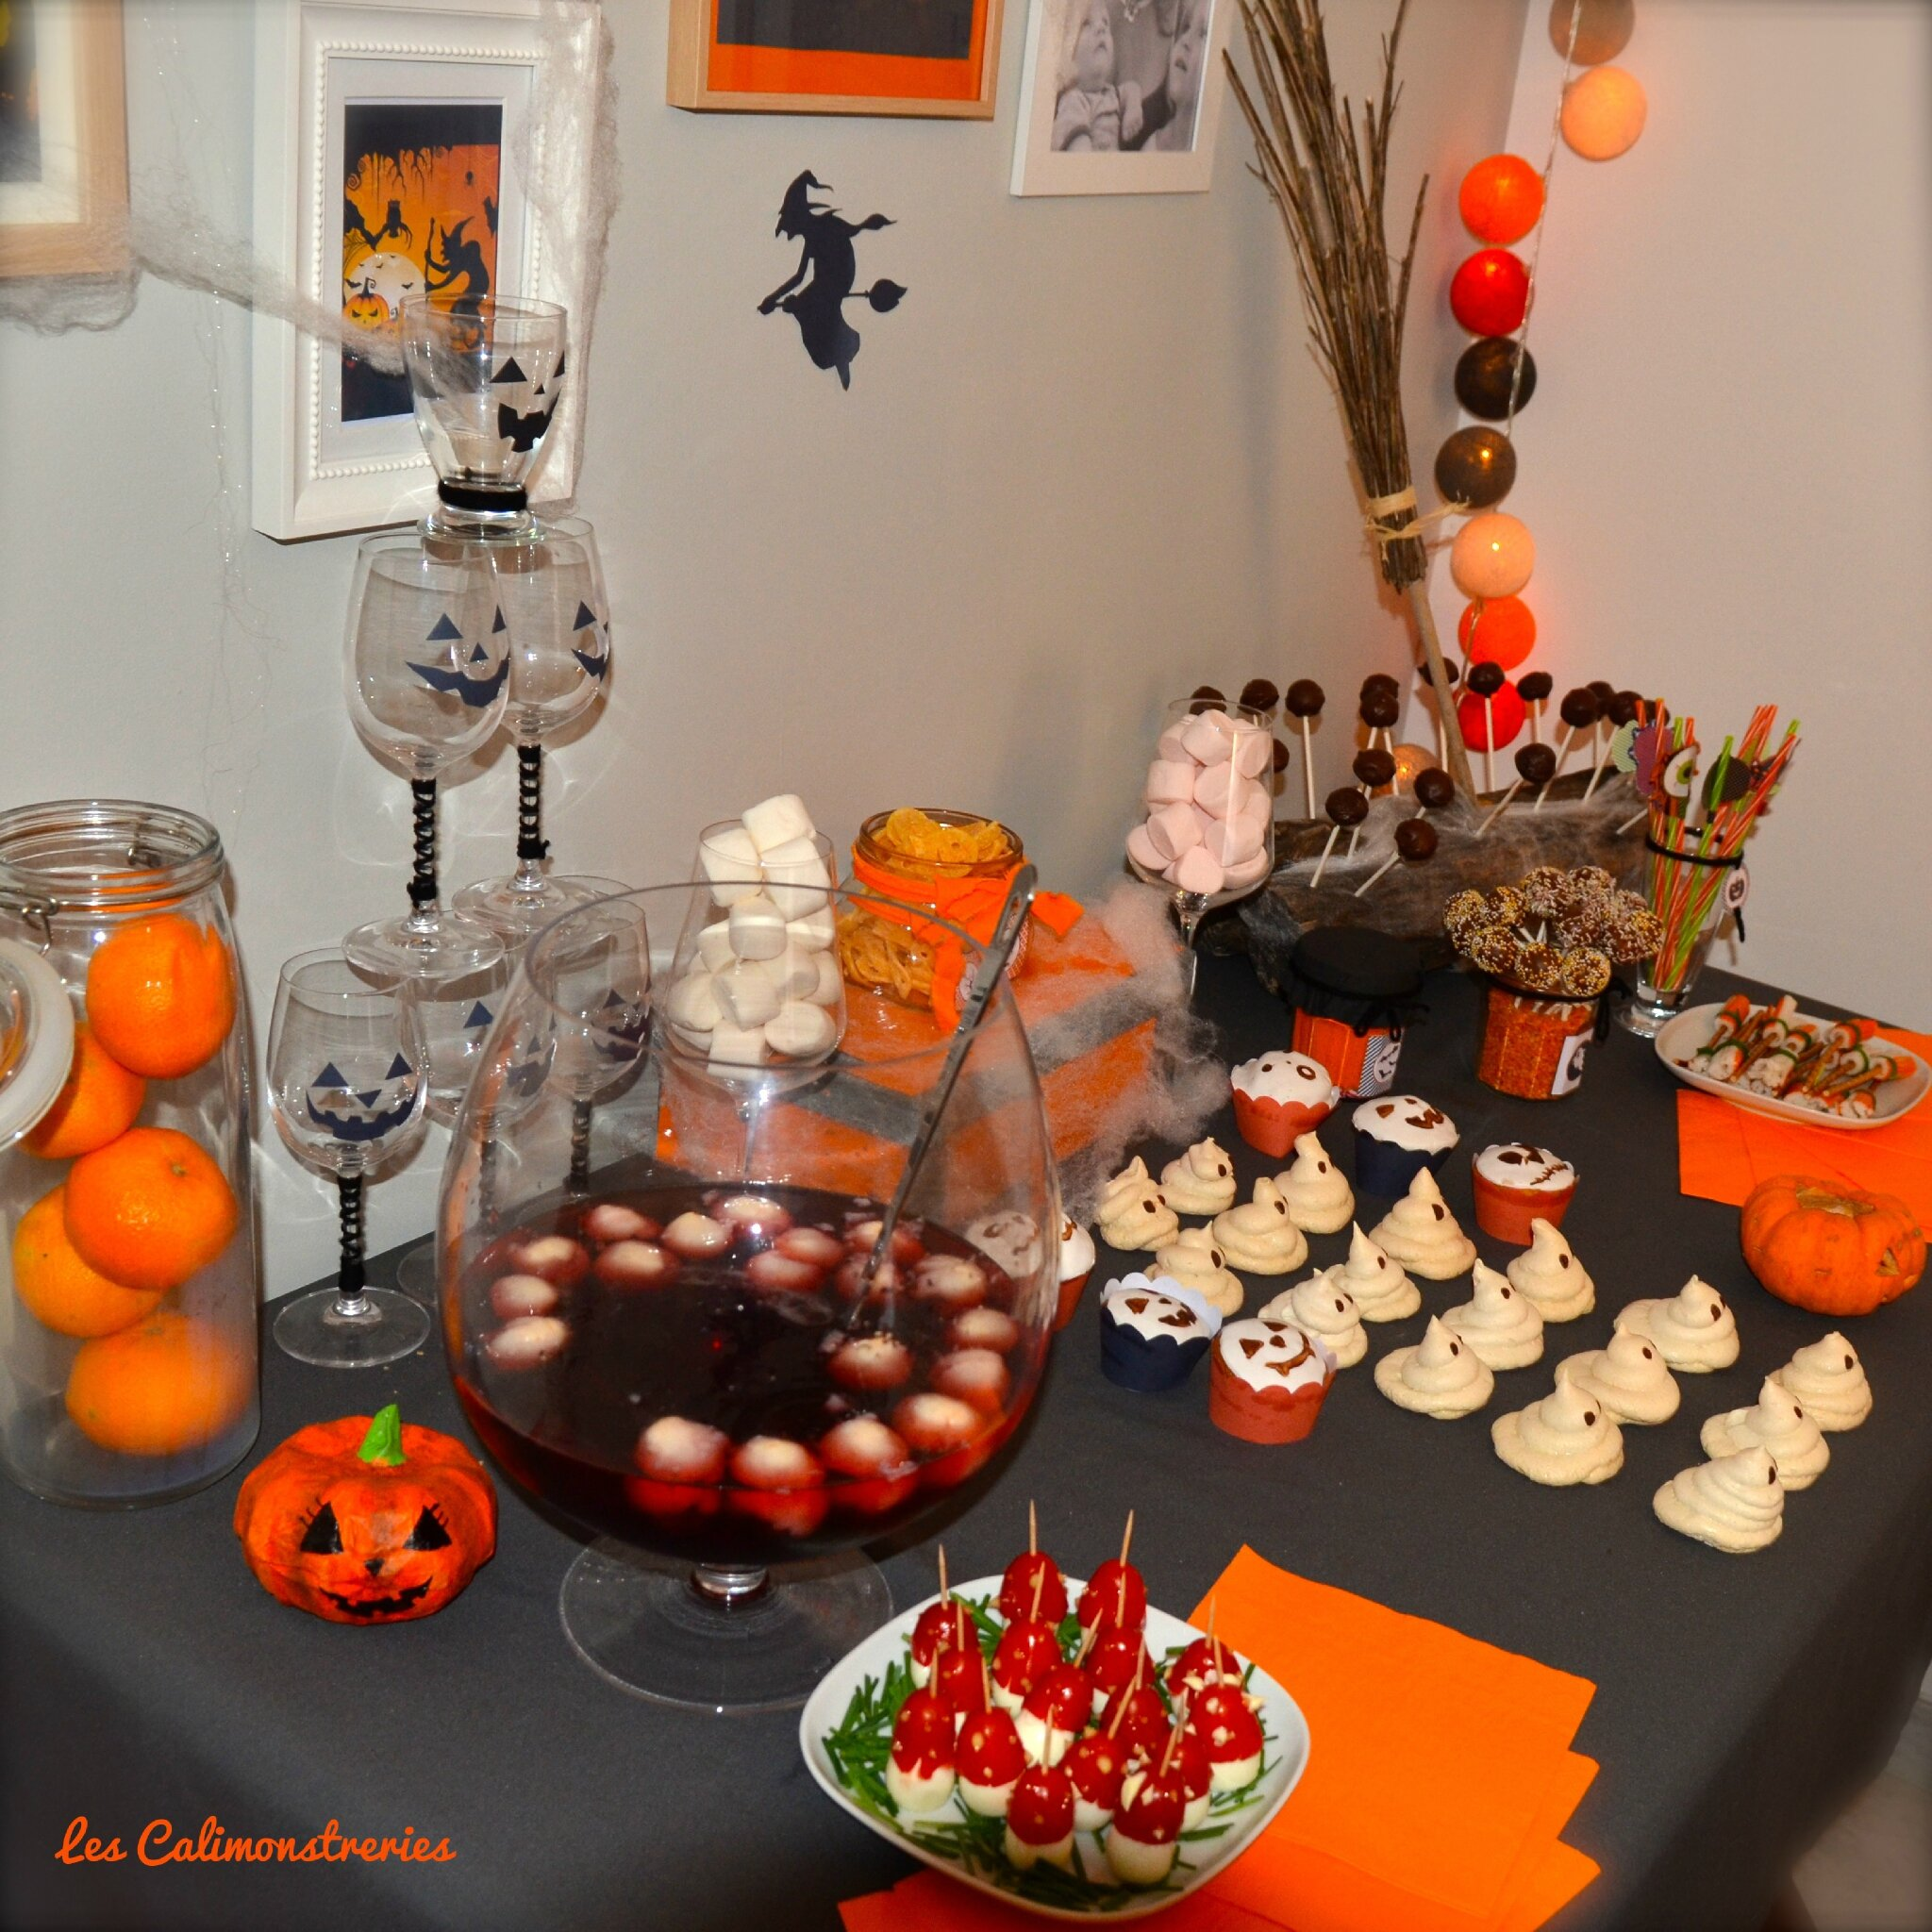 Top Sweet table d'Halloween - Les Calimonstreries ZC89